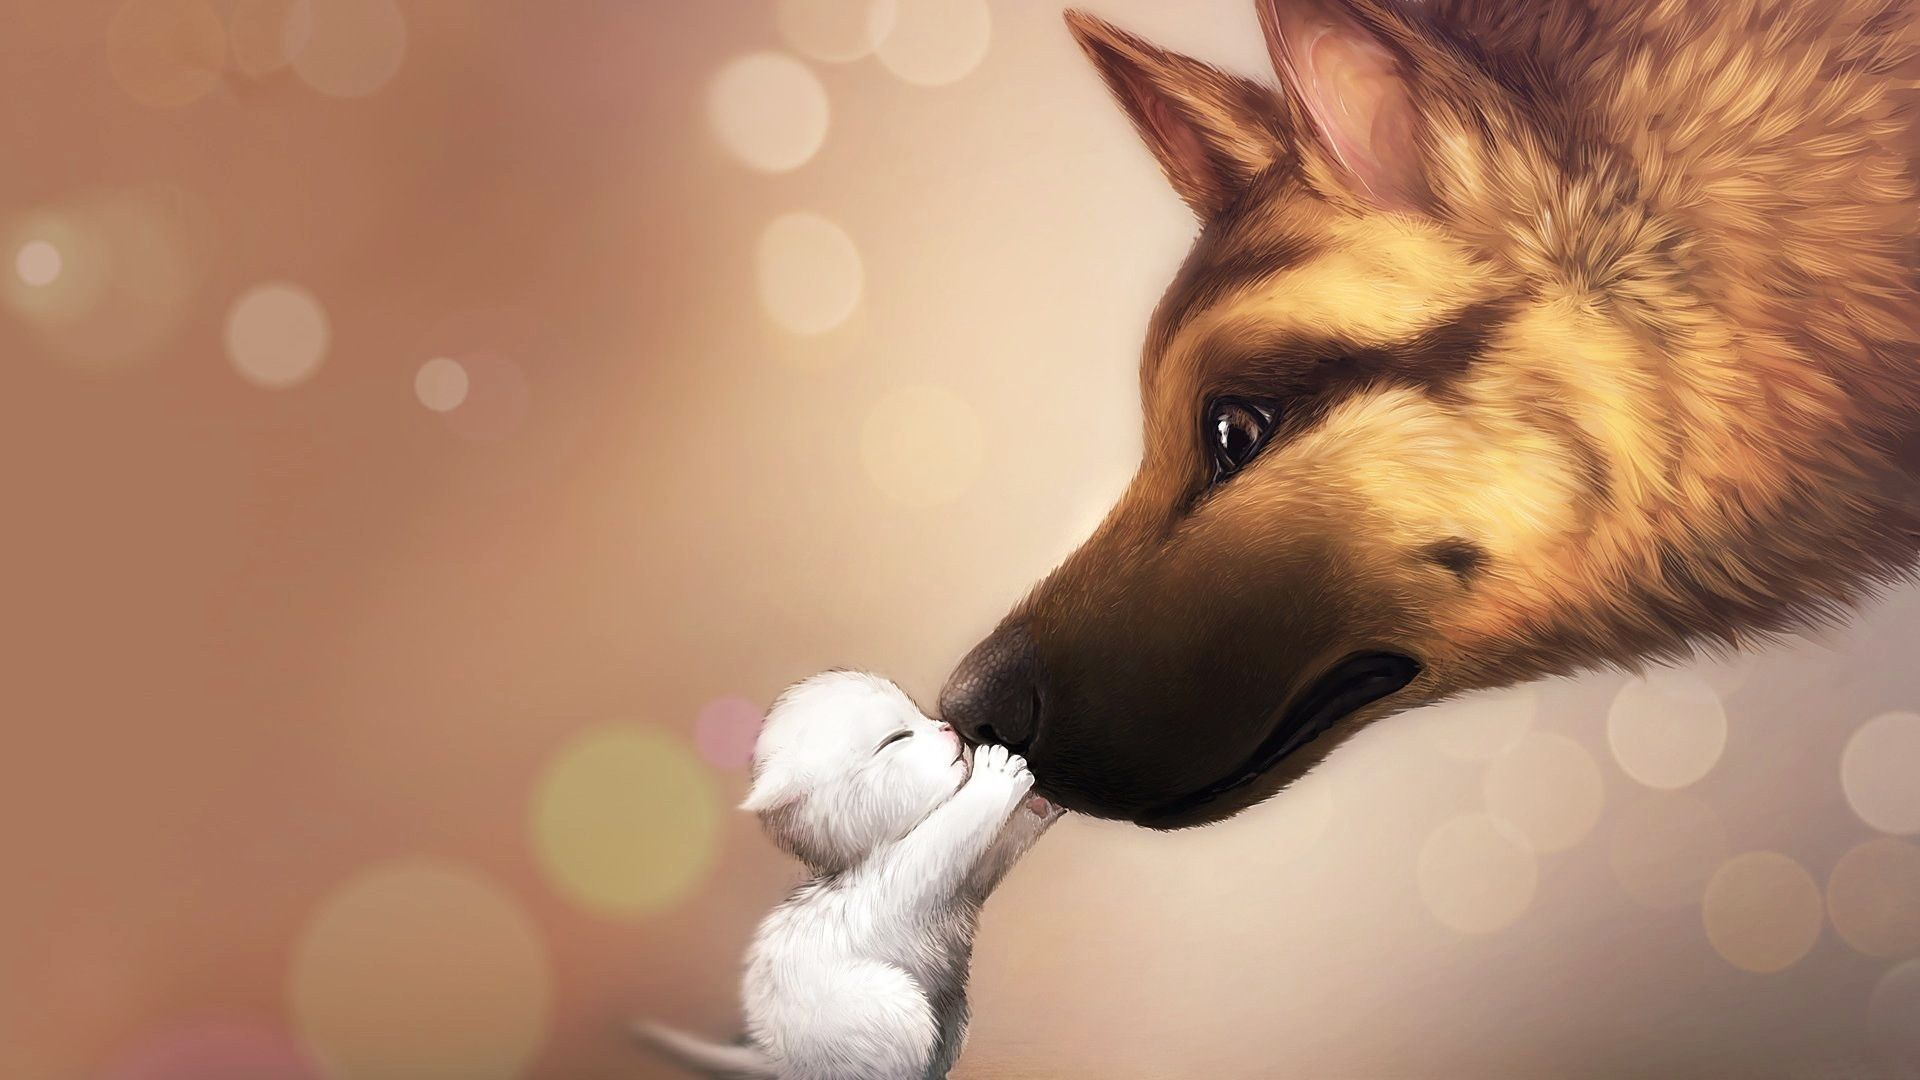 Animated Animals Wallpapers For Desktop 14 G Beautiful Animals Cute Animals Cute Animal Backgrounds Desktop Ba Cute Animals Animated Animals Cute Cats And Dogs